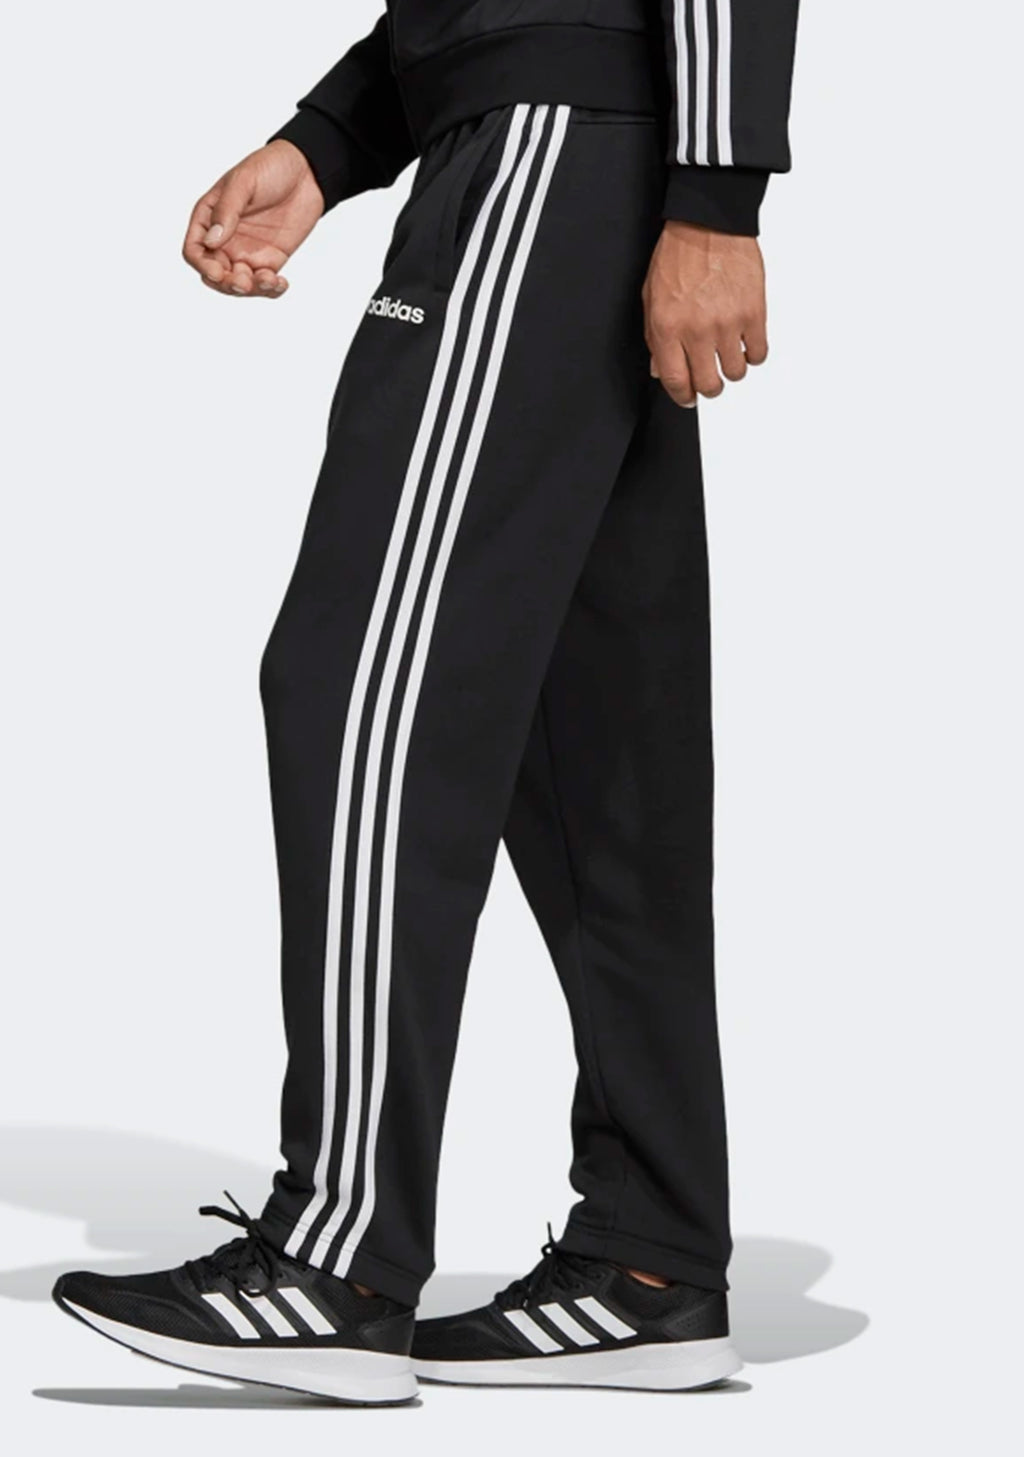 ADIDAS MENS ESSENTIAL 3 STRIPES TAPERED CUFFED FLEECE PANTS <BR> DQ3093